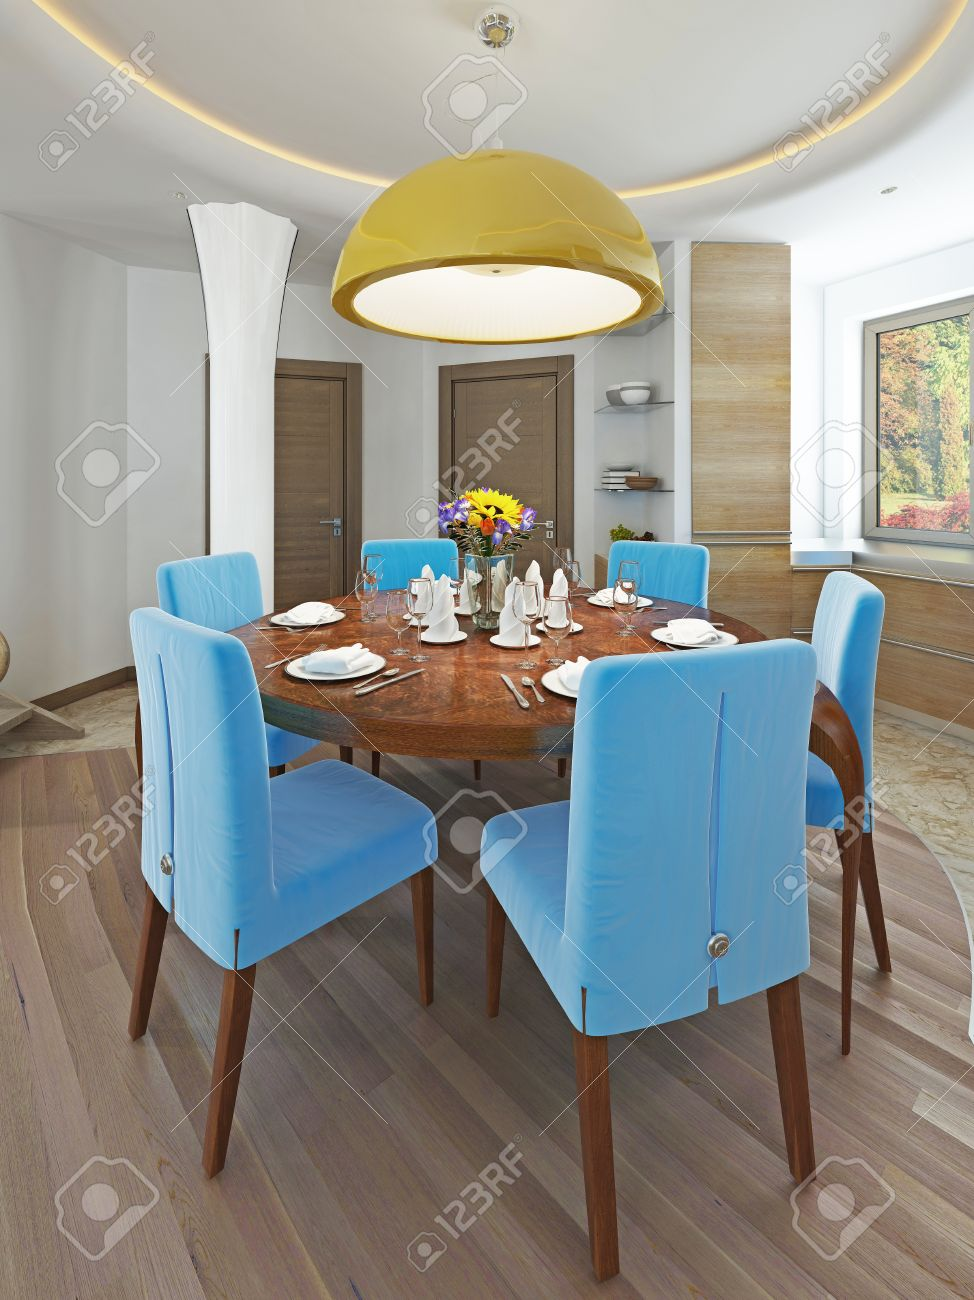 60565125 Modern dining room with kitchen in a trendy style kitsch Round dining table with comfortable blue ch Stock Photo